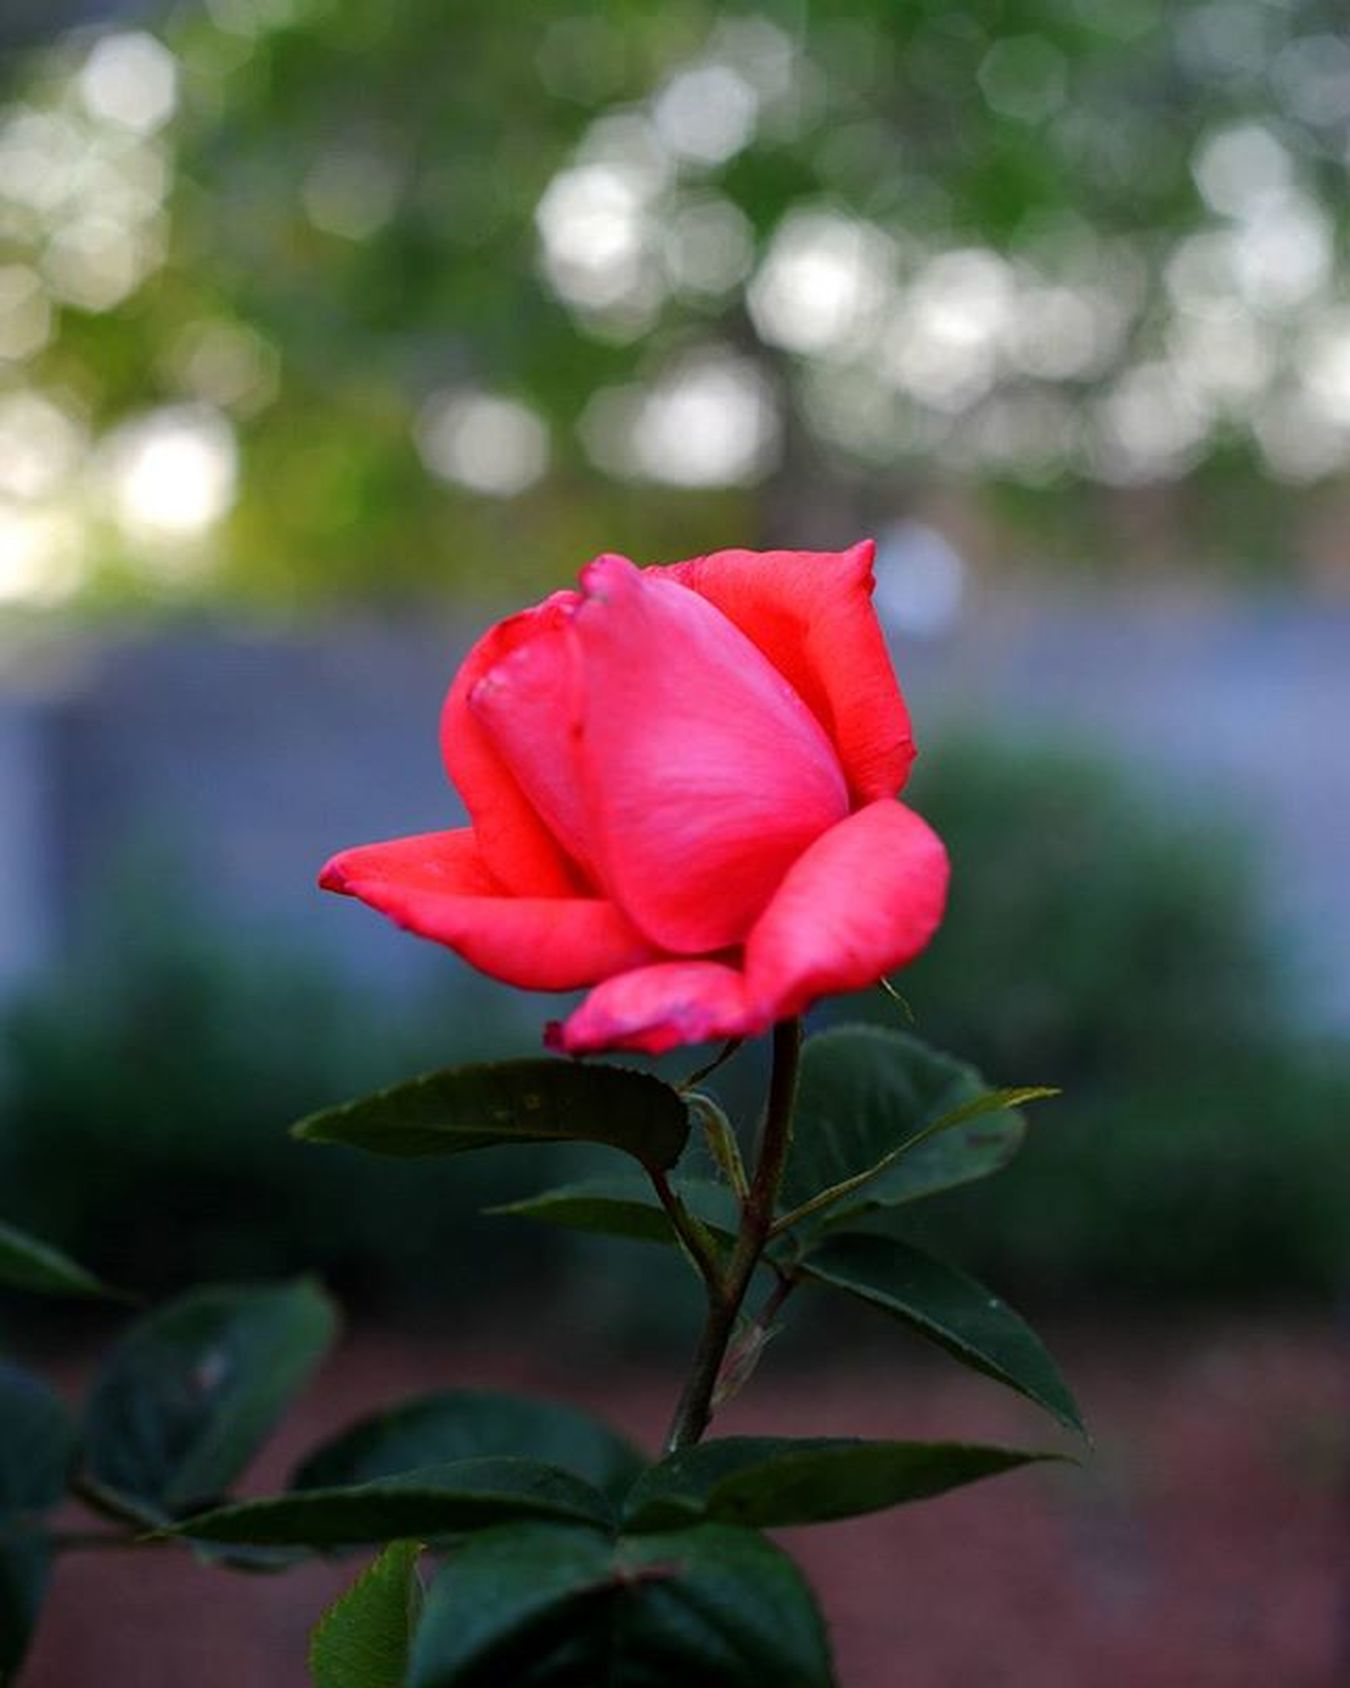 A rose by any other name would not smell as sweet. Rosé Flower Photography DSLR Nikon D700 Processed with DigiKam